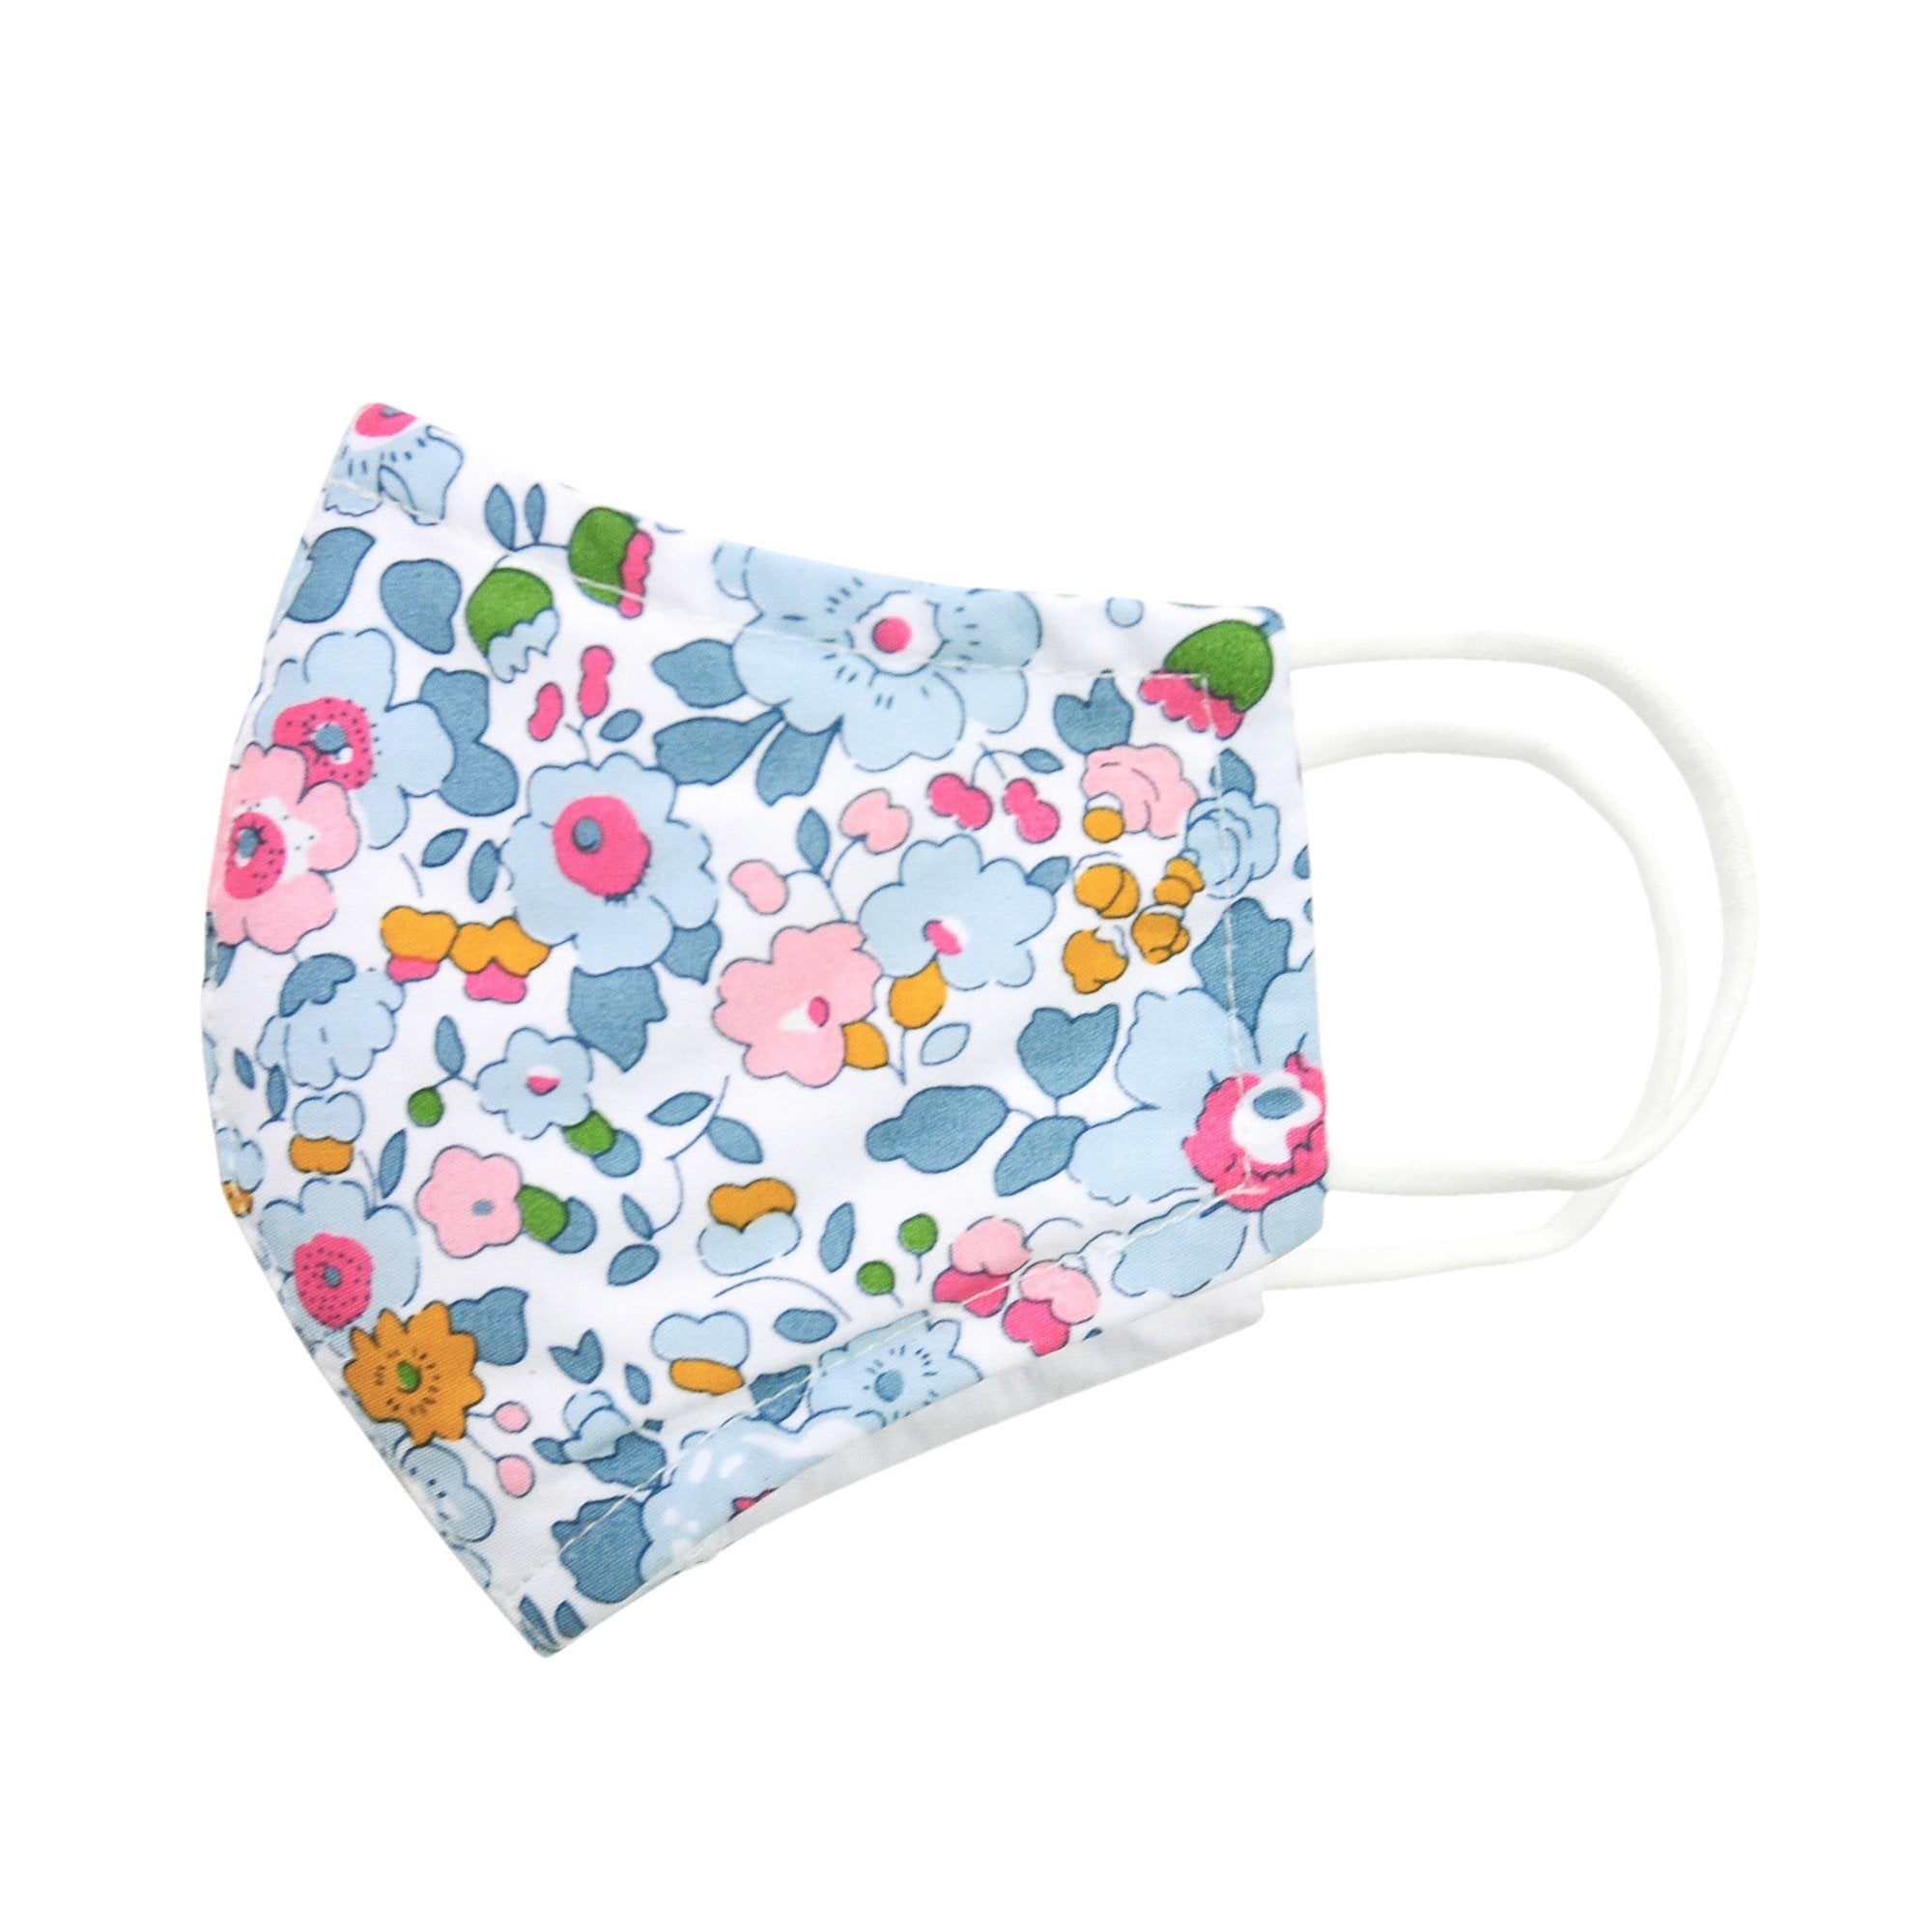 FACE MASK IN PALE BLUE LIBERTY PRINT